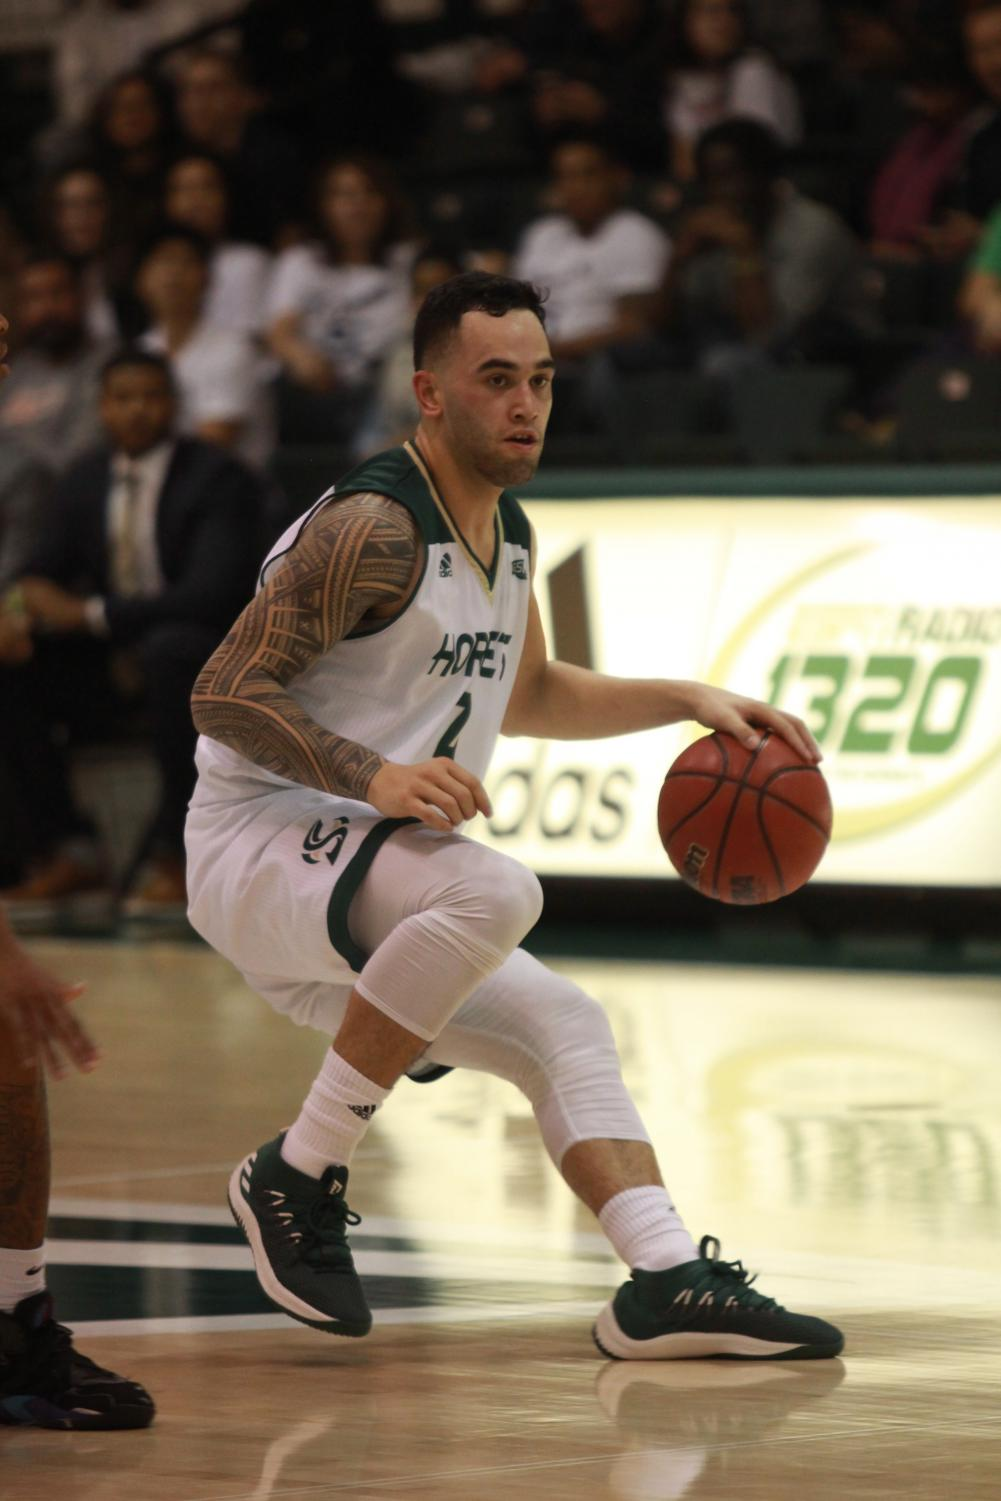 Sac State junior guard Izayah Mauriohooho-Le'afa scored 16 points in the Hornets 72-70 loss against Idaho State on Saturday.